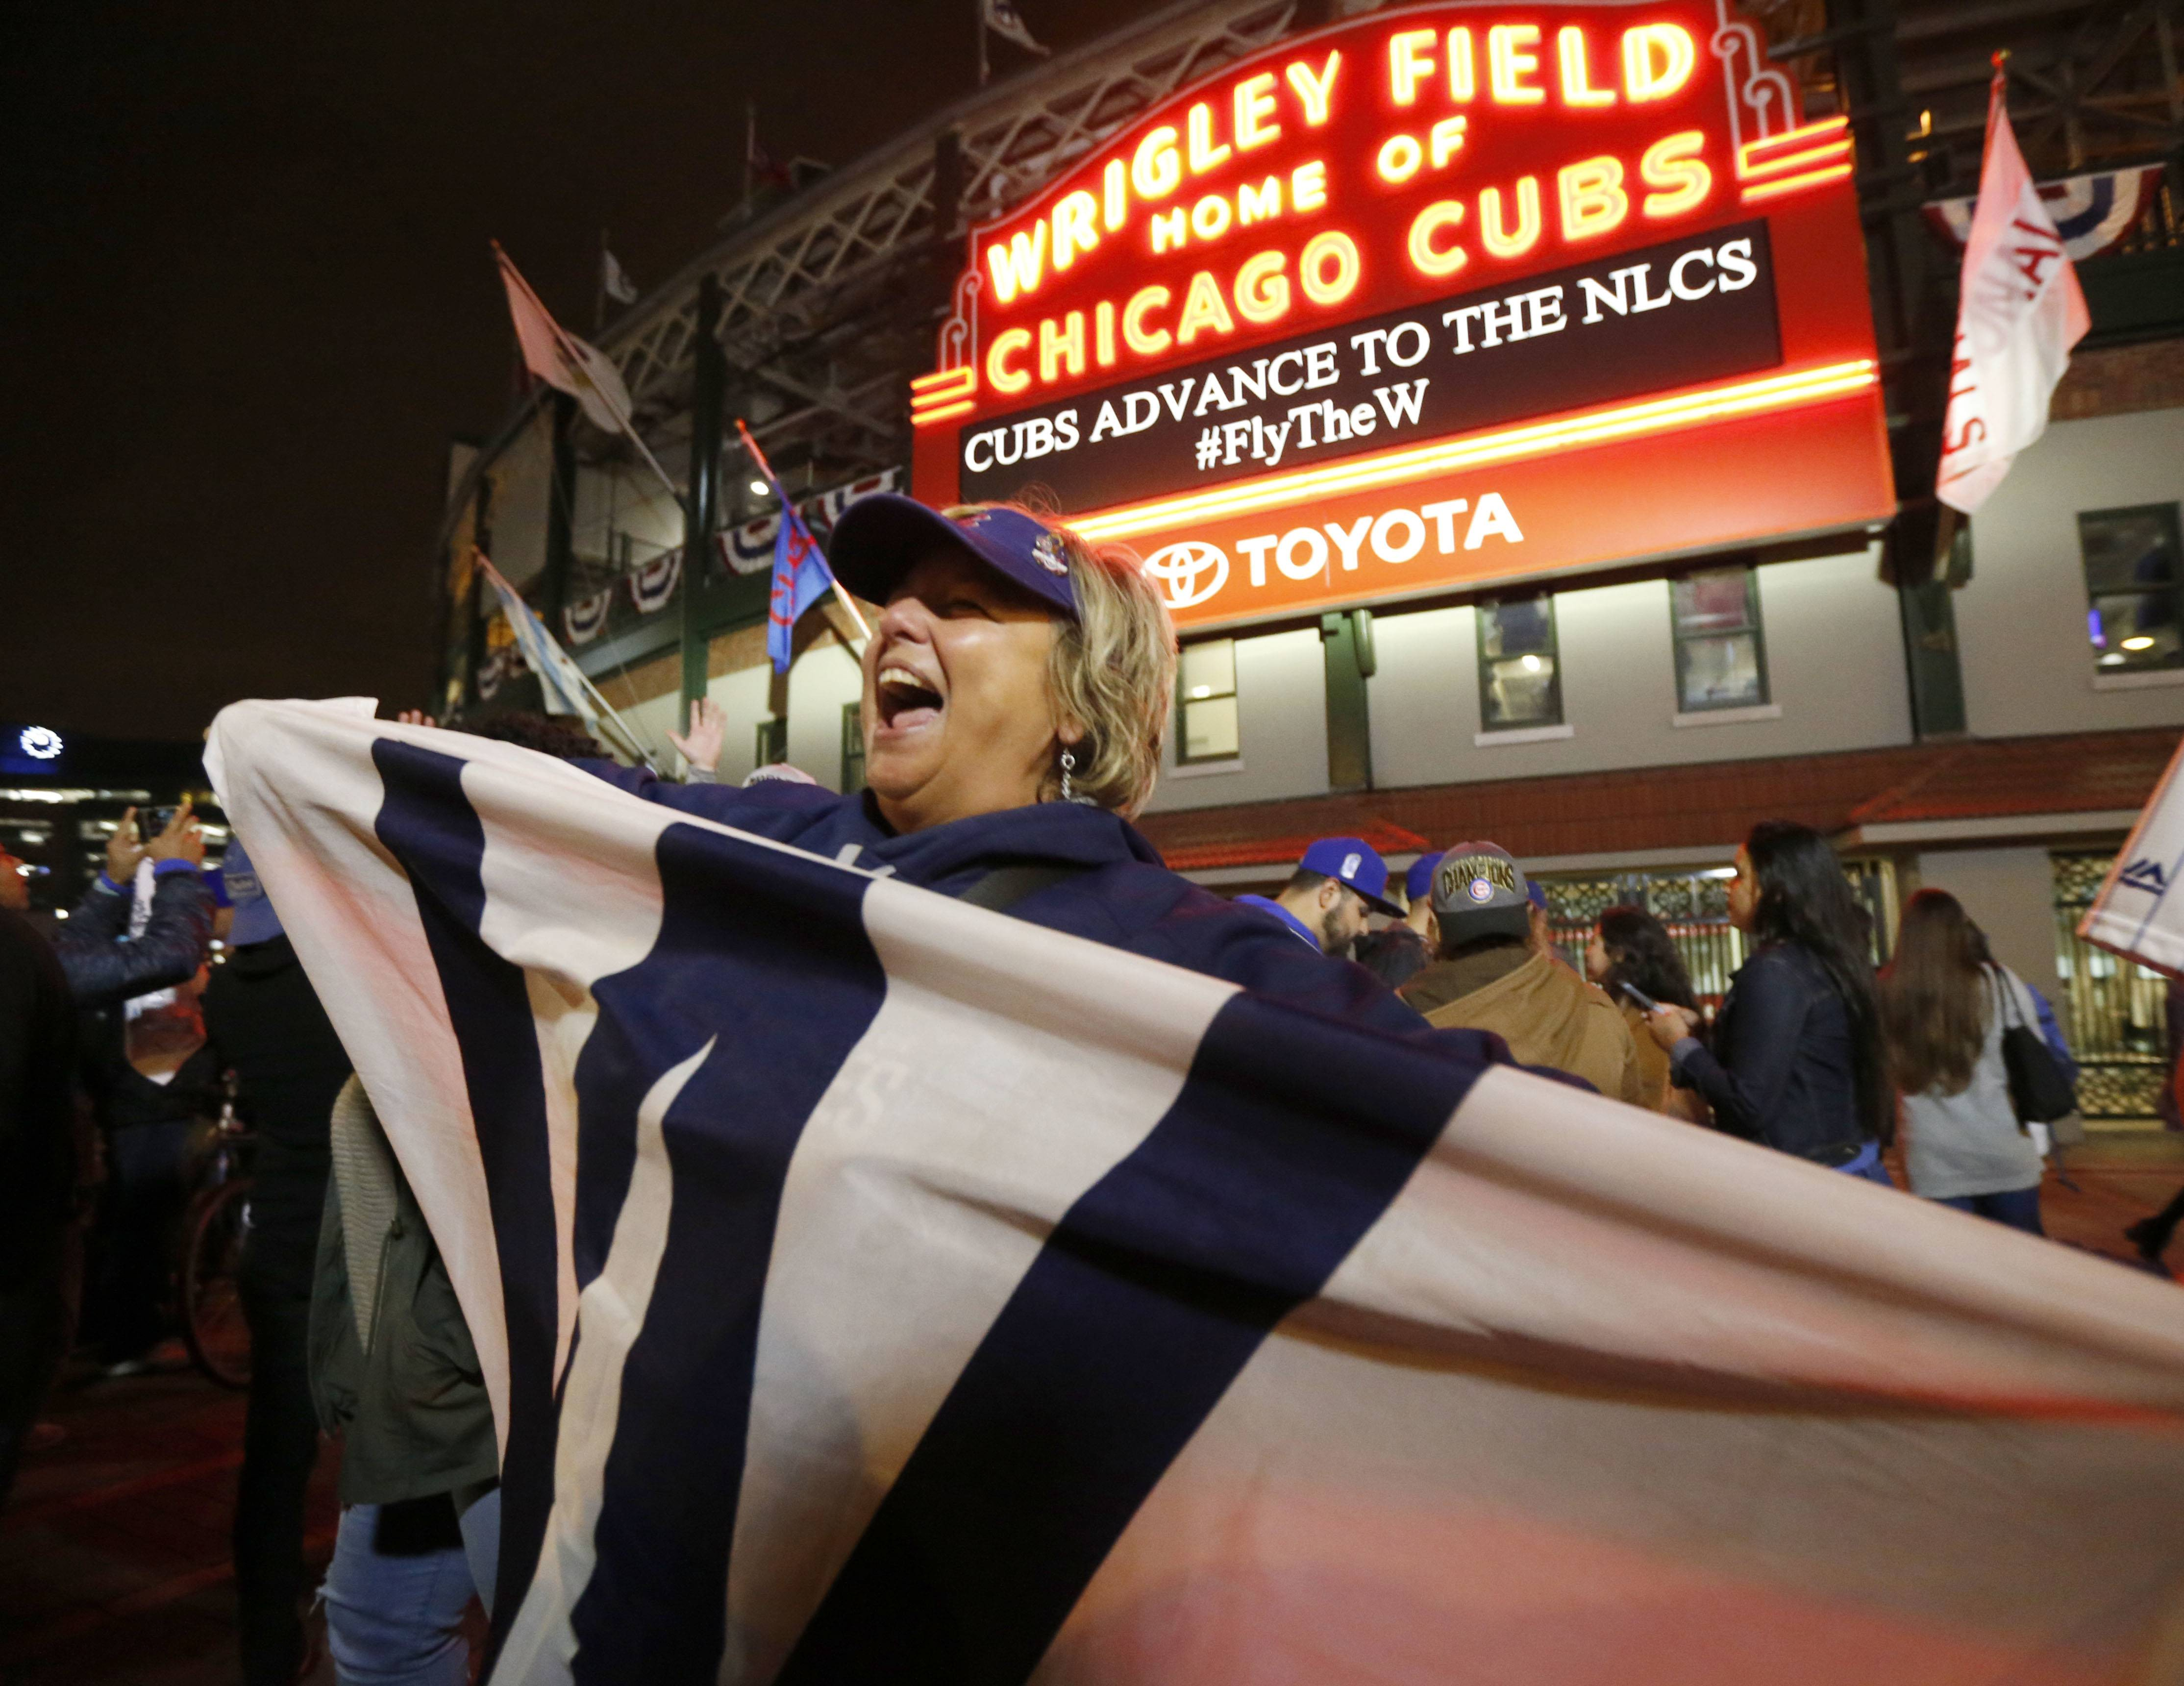 Cubs fans celebrate outside Wrigley Field on Thursday in Chicago, after the Cubs defeated the Washington Nationals 9-8 in Washington in Game 5 of the National League division series to advance to the NLCS.